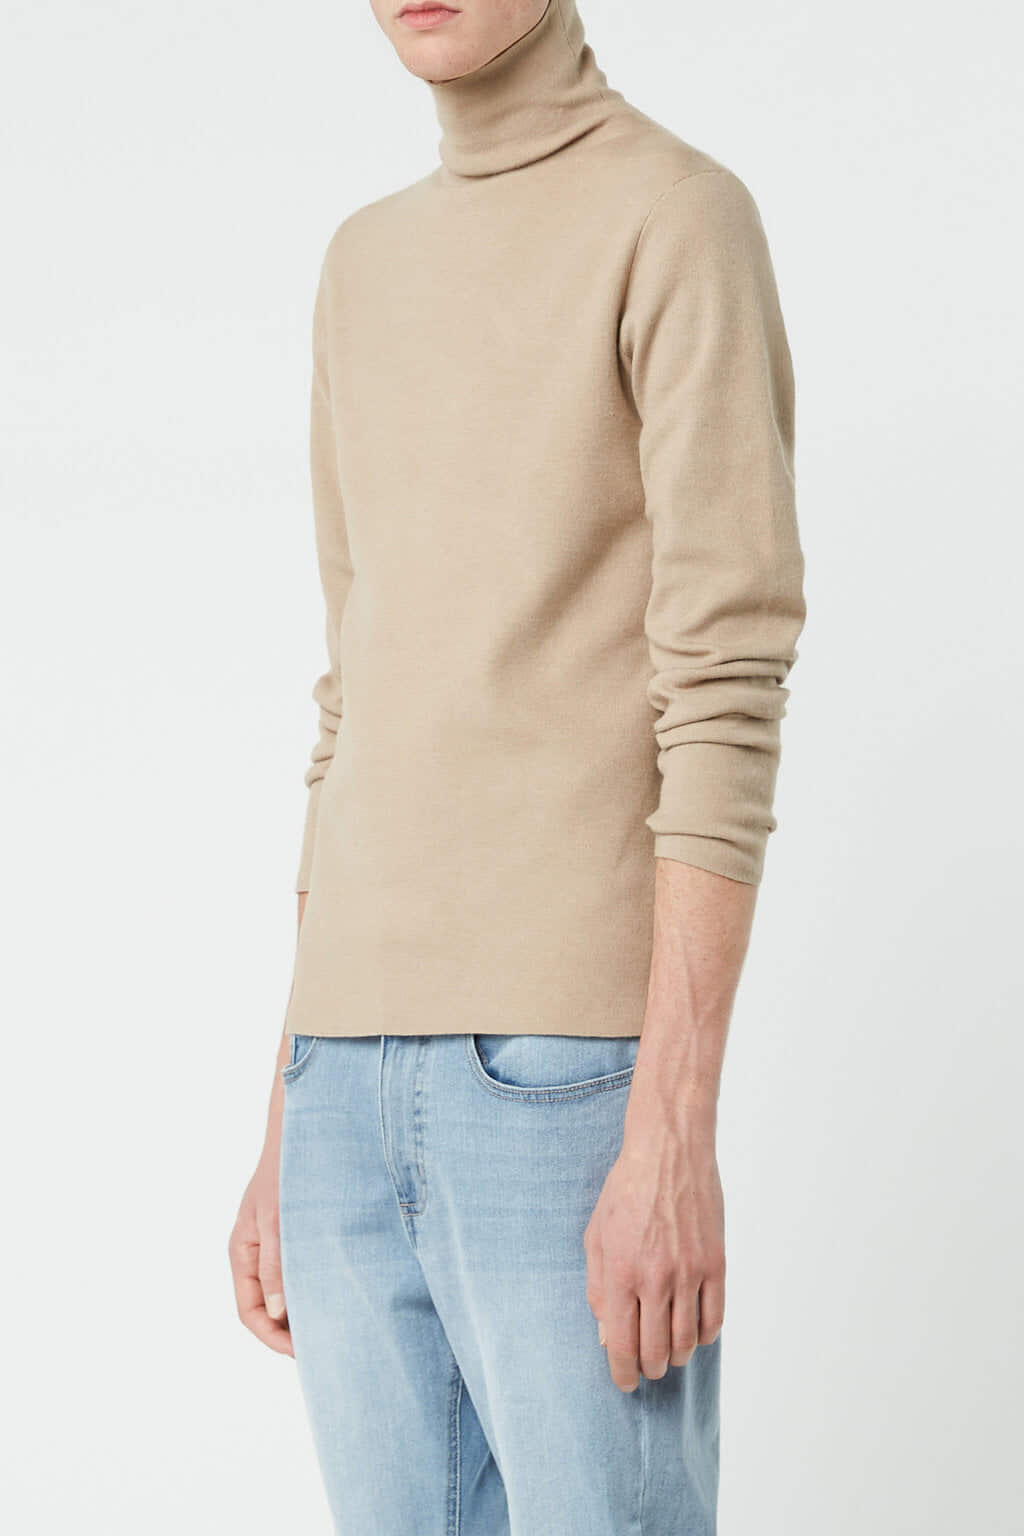 Sweater 2661 Camel 1